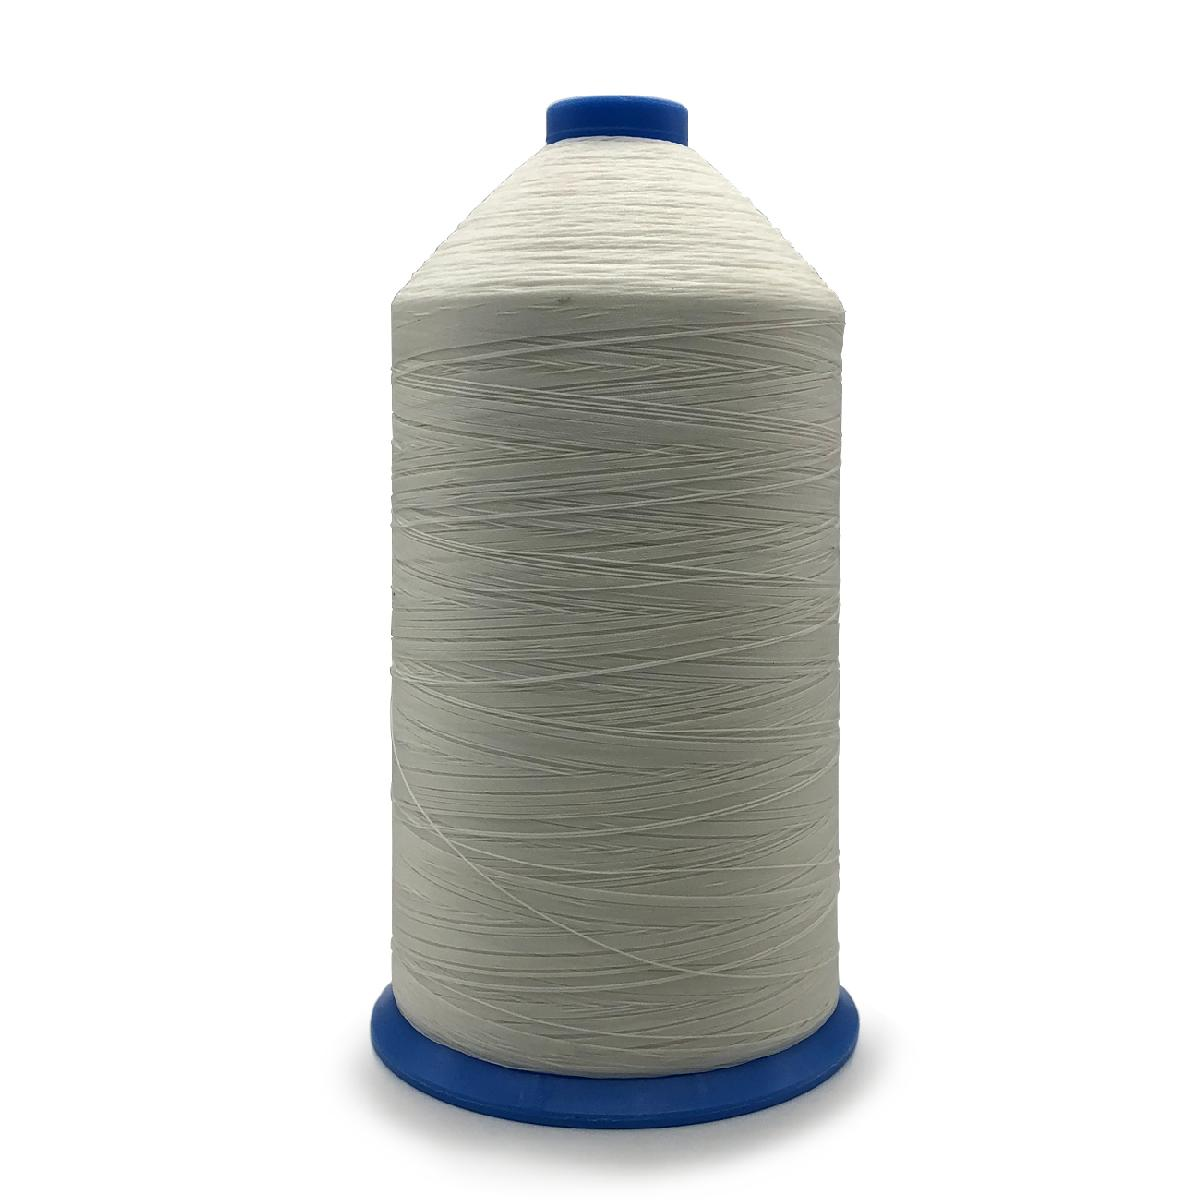 Anefil Nylon Thread Tex 90 White